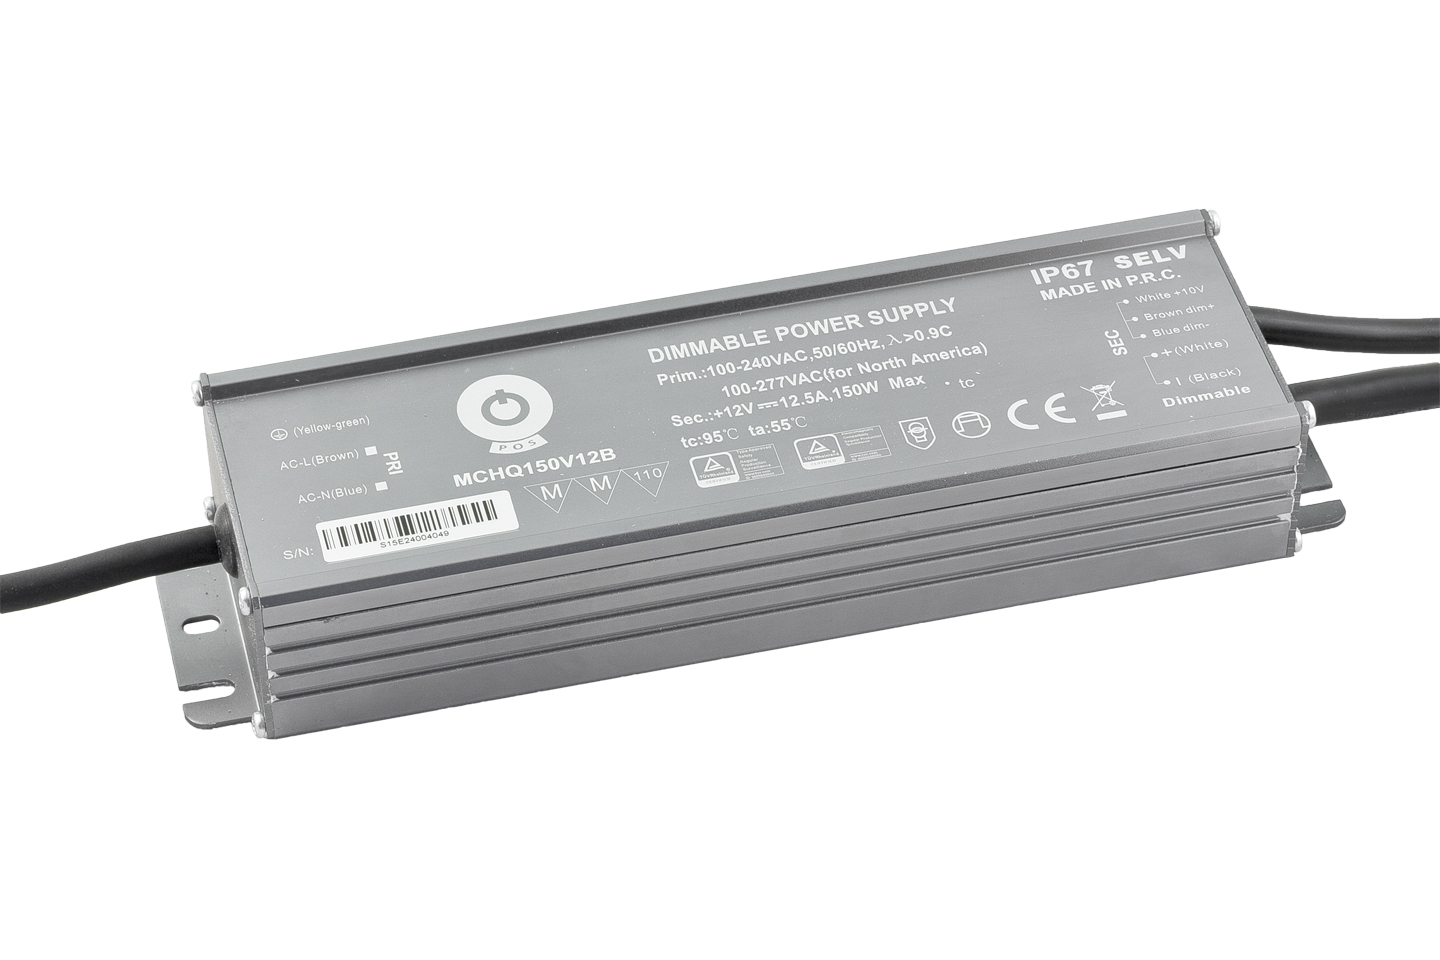 Trafo Verlichting Dimbare Led Voeding 150 Watt 12 Volt 12 5 Ampere Ip67